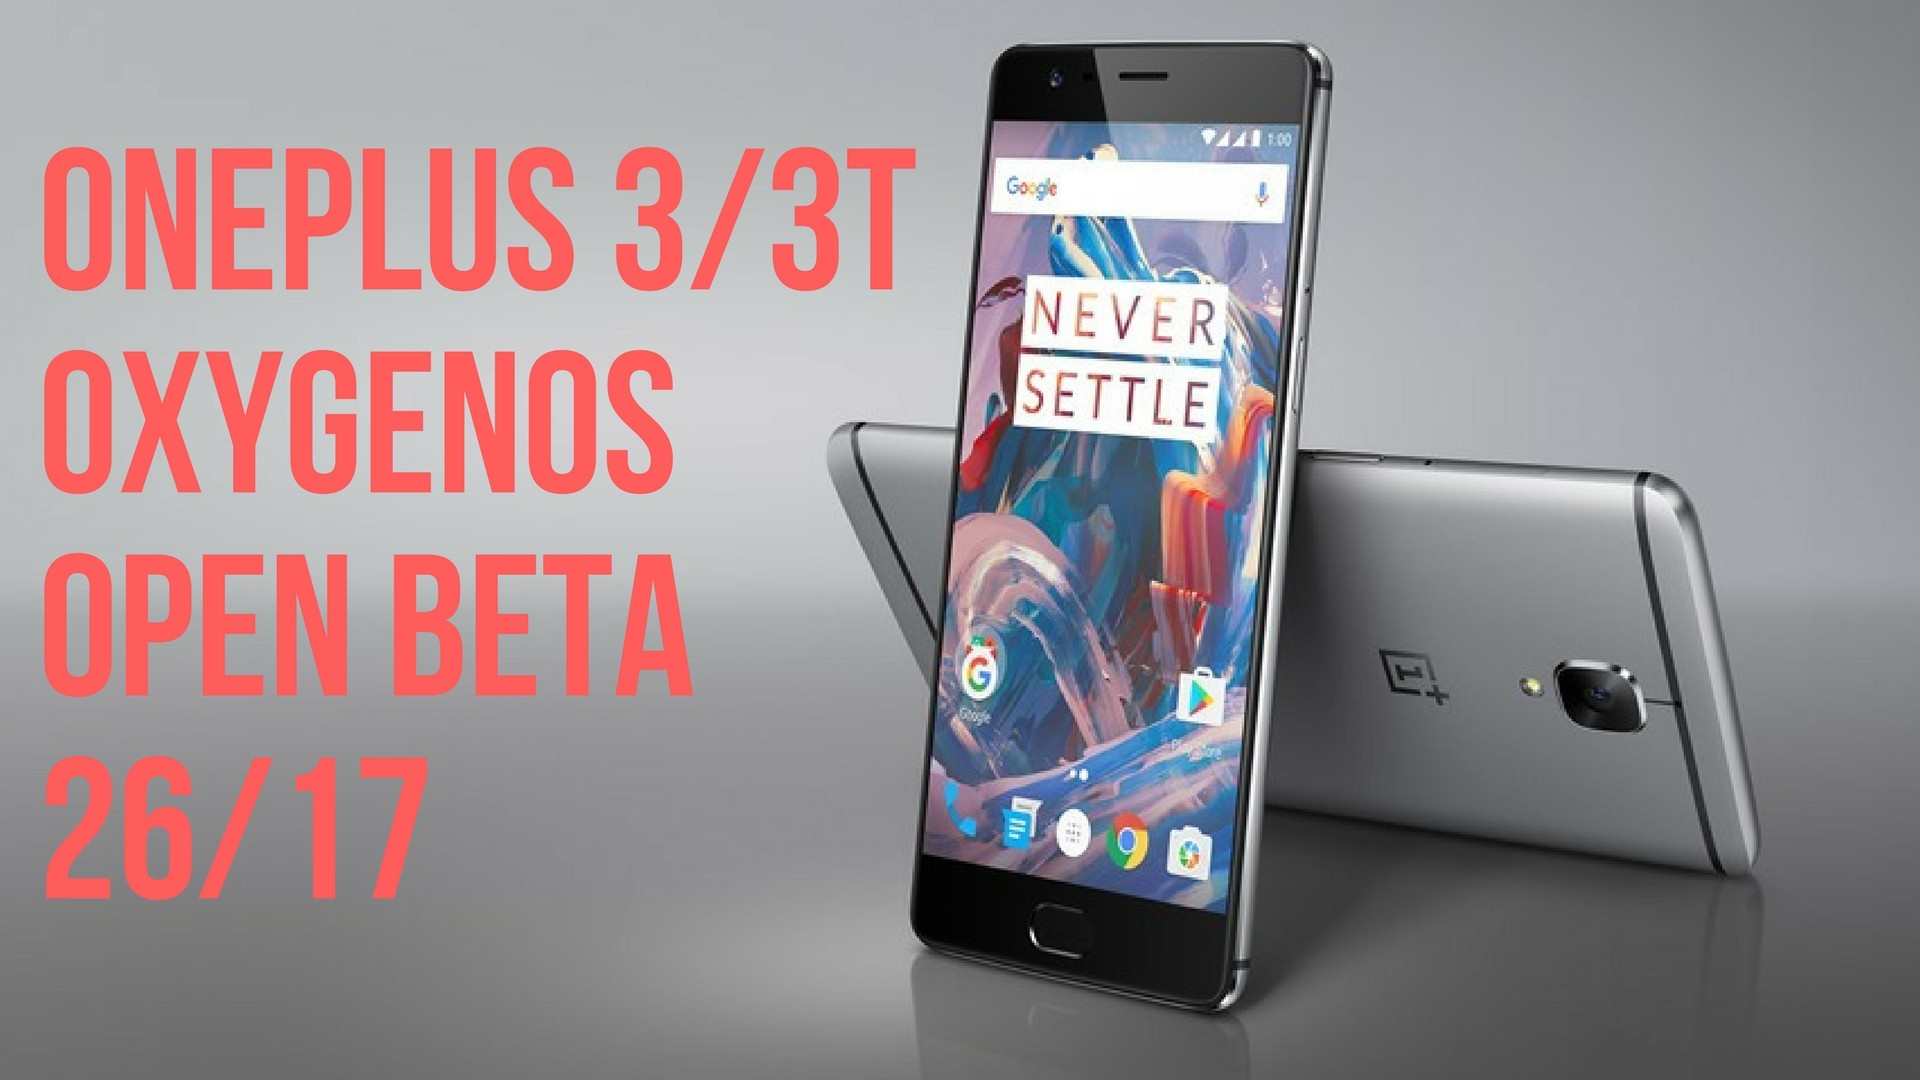 oneplus 3/3t android oreo